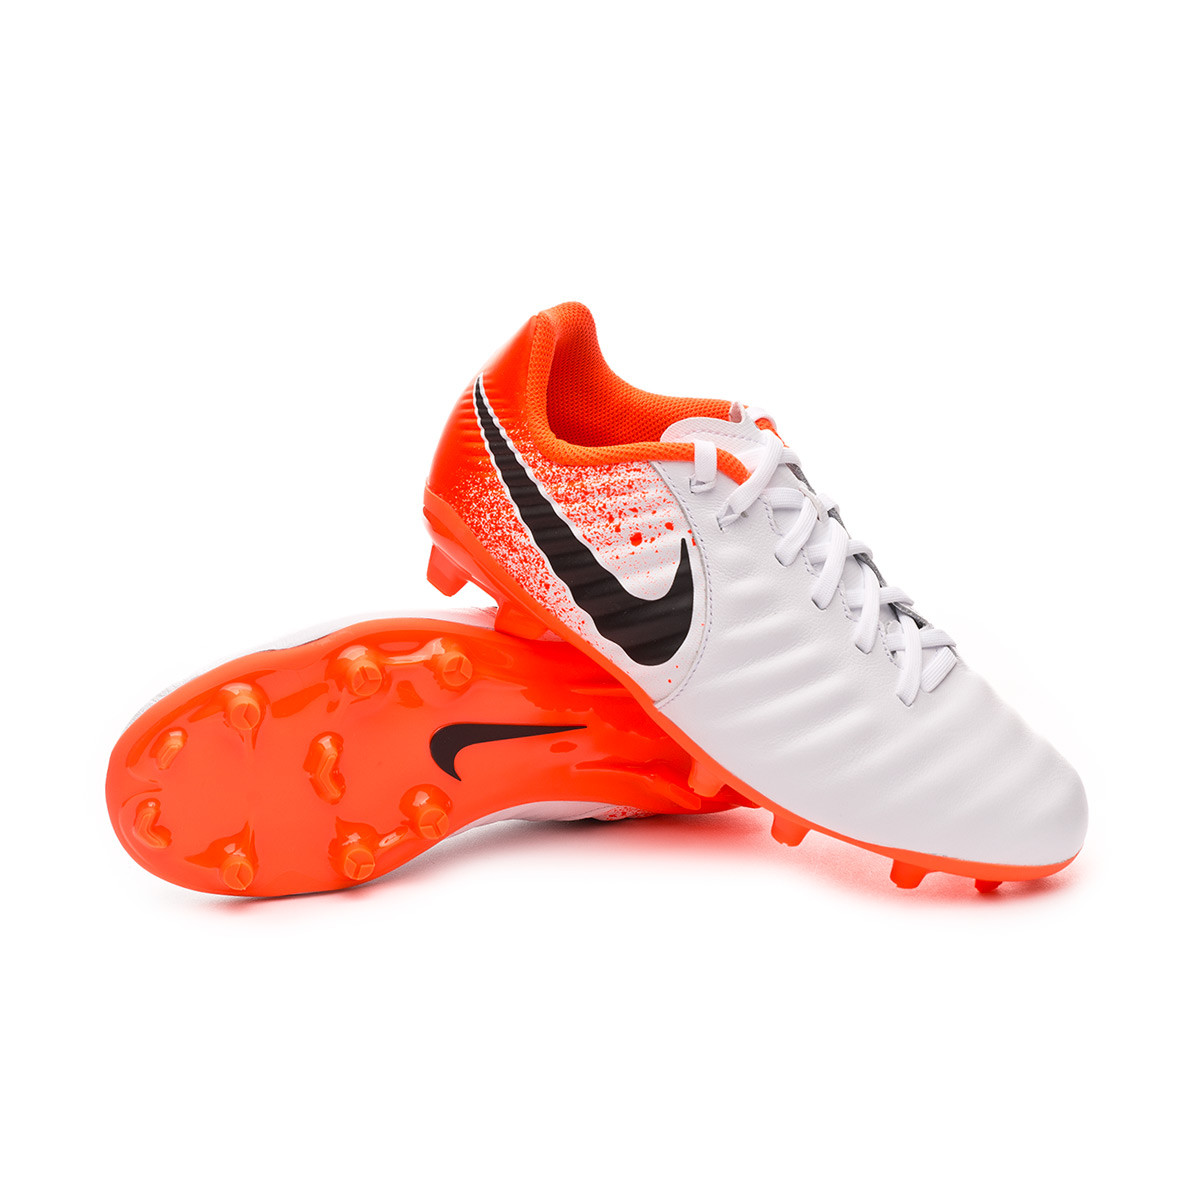 official photos 4e5da 14d71 Bota Tiempo Legend VII Academy MG Niño White-Black-Hyper crimson